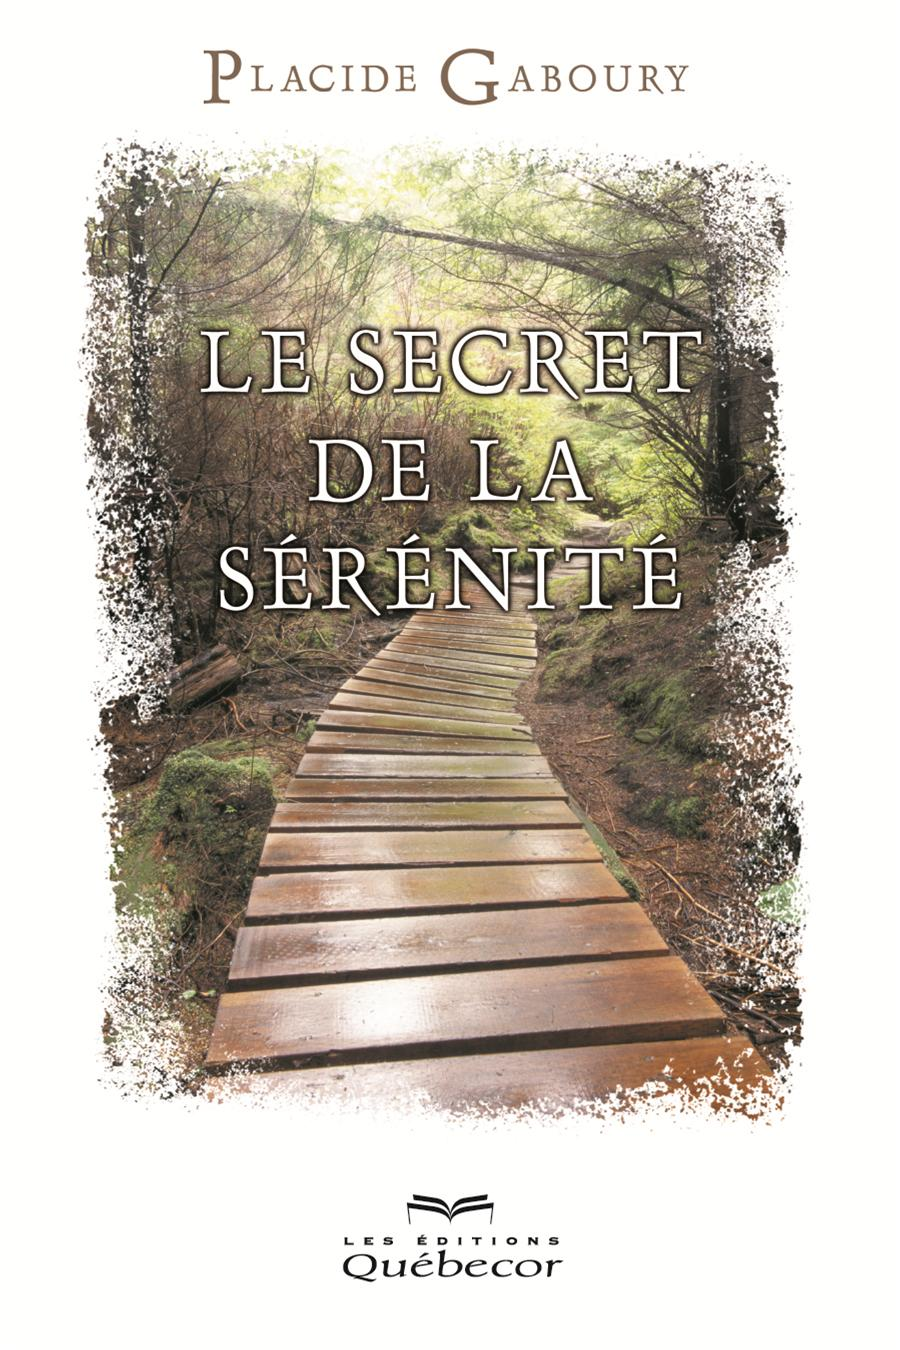 LES SECRETS DE LA SERENITE - 3E EDITION